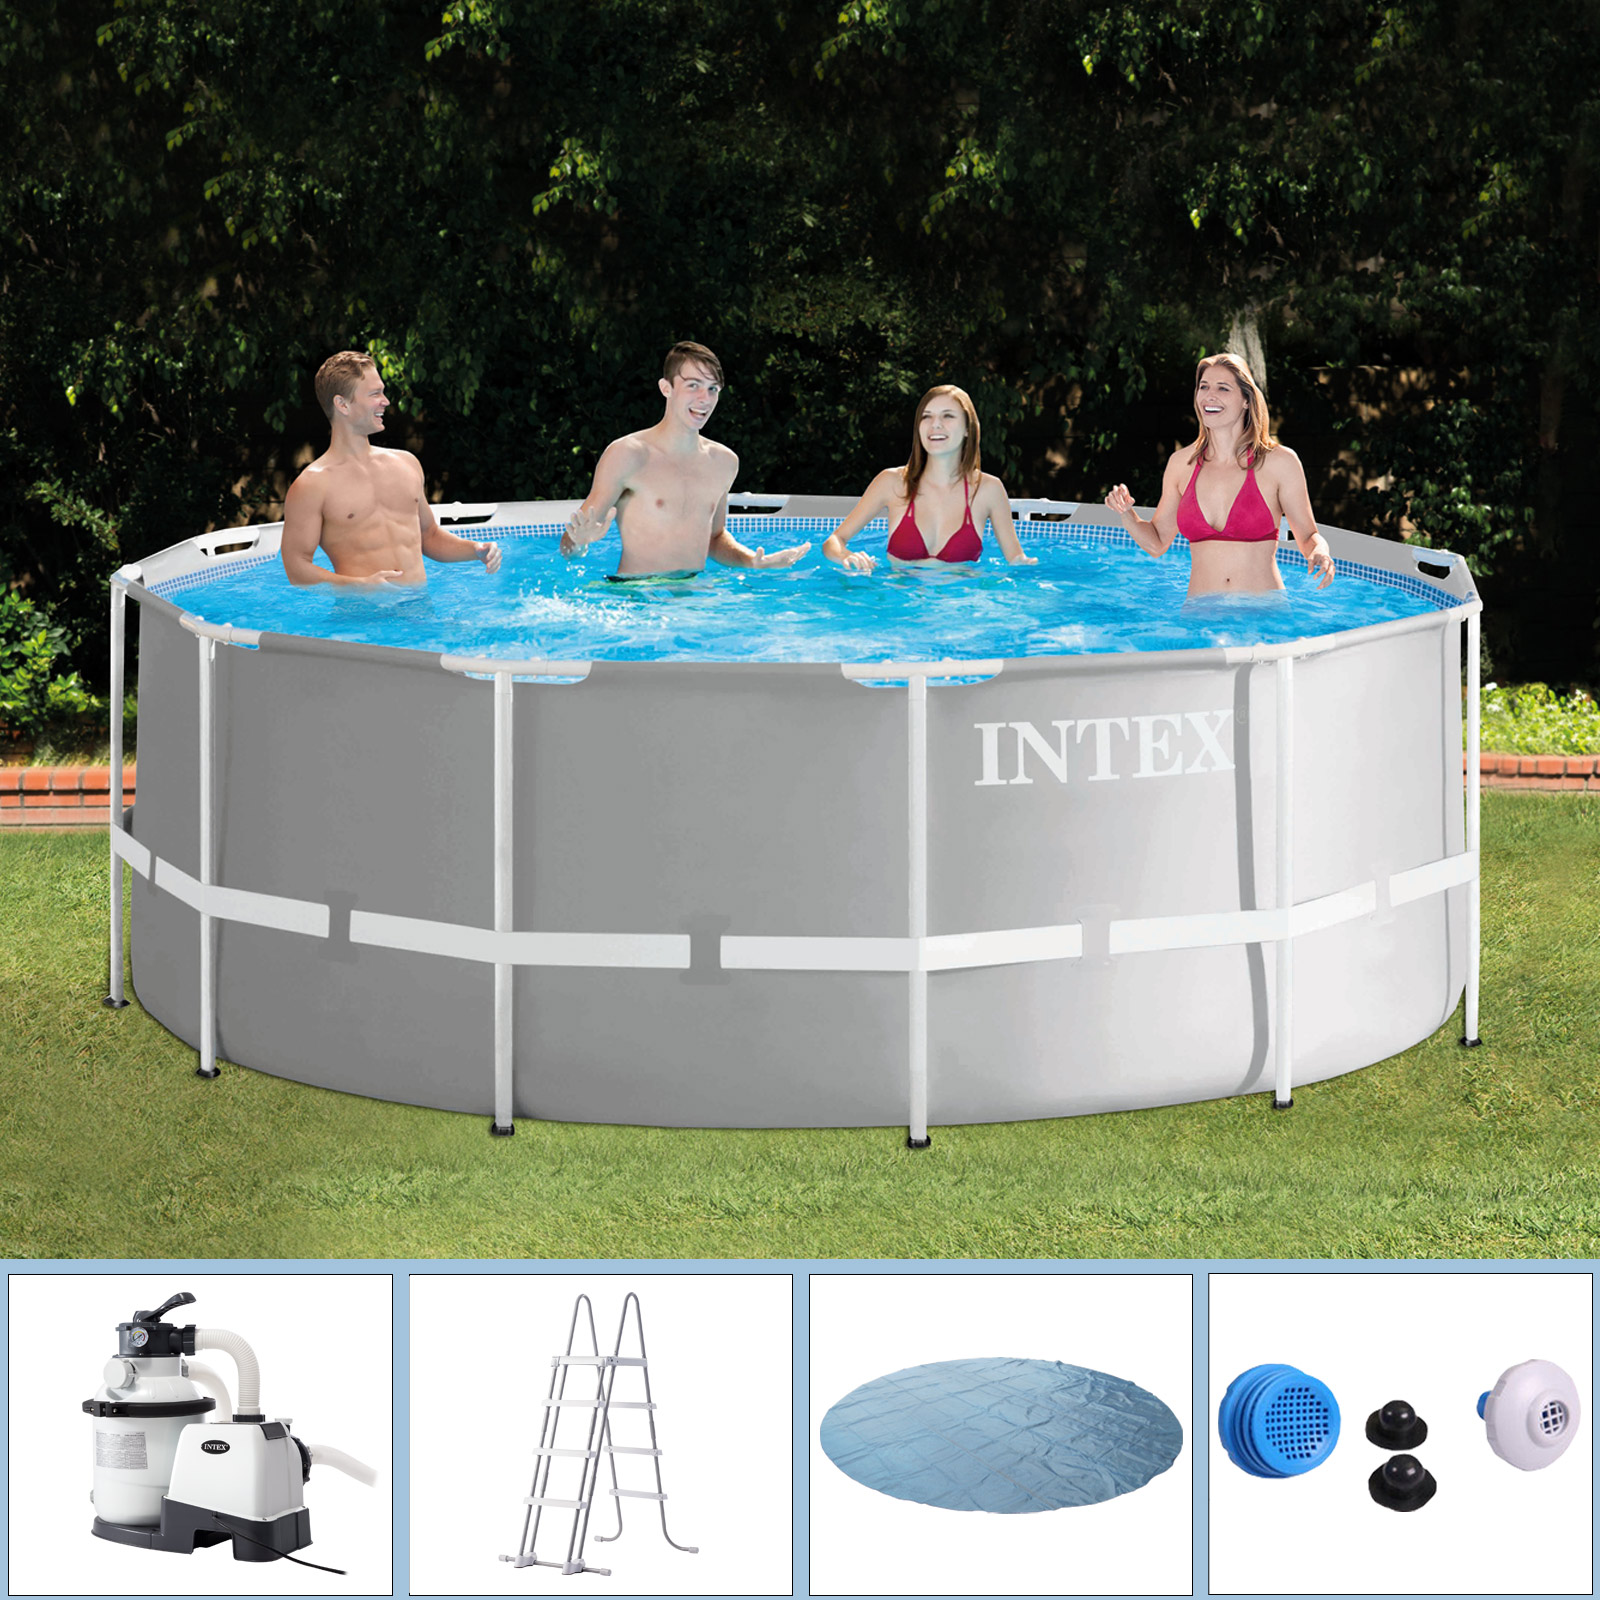 Jilong Pool Reinigungsset Intex Swimming Pool Frame 366x122 Cm Mit Sandfilter Leiter Solarfolie